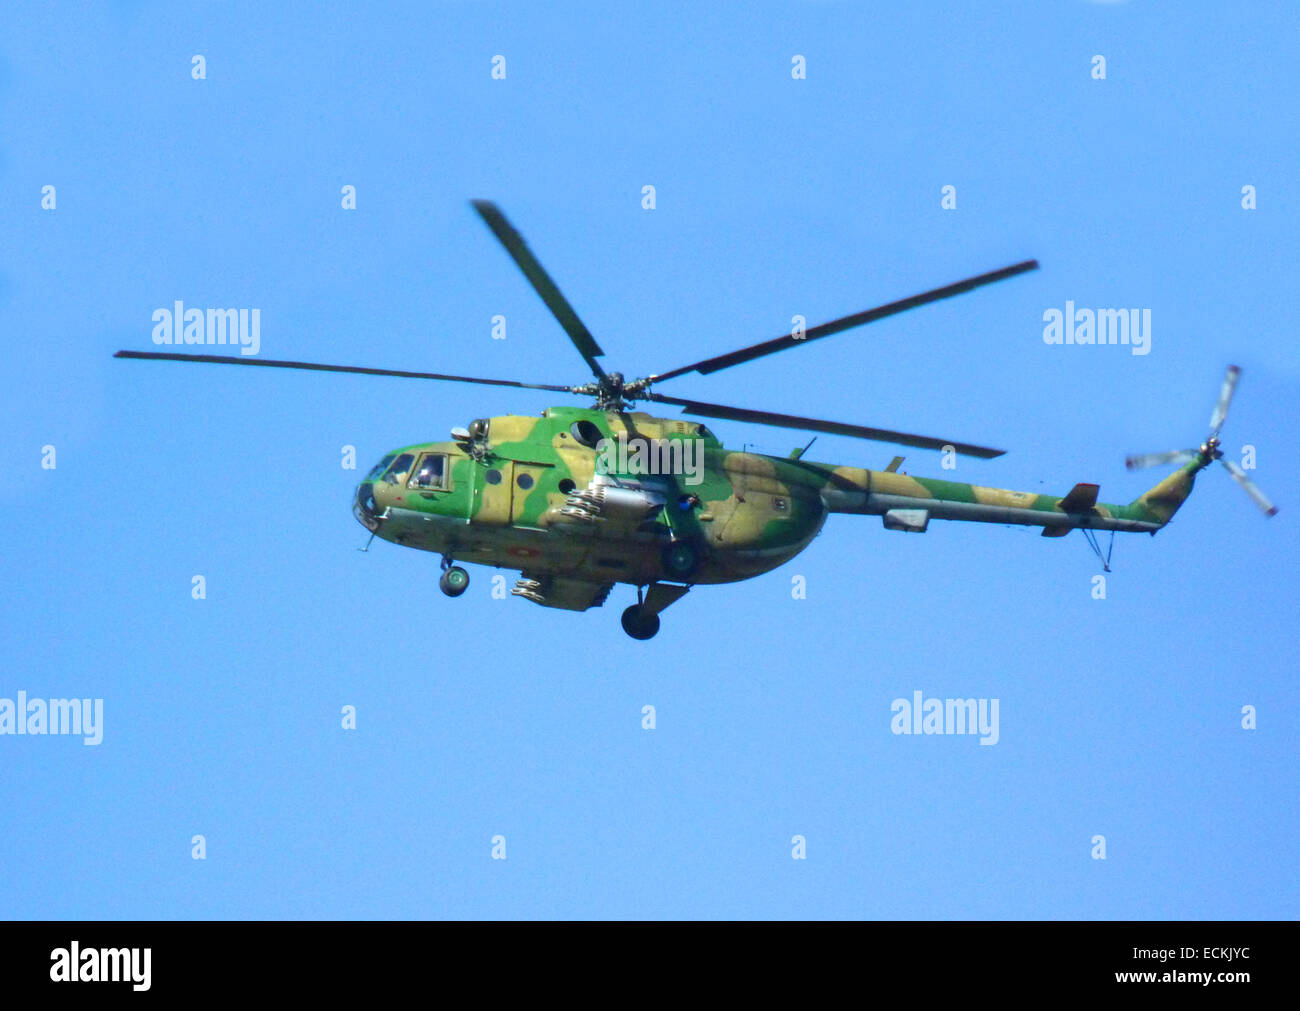 Military helicopter in the air - Stock Image